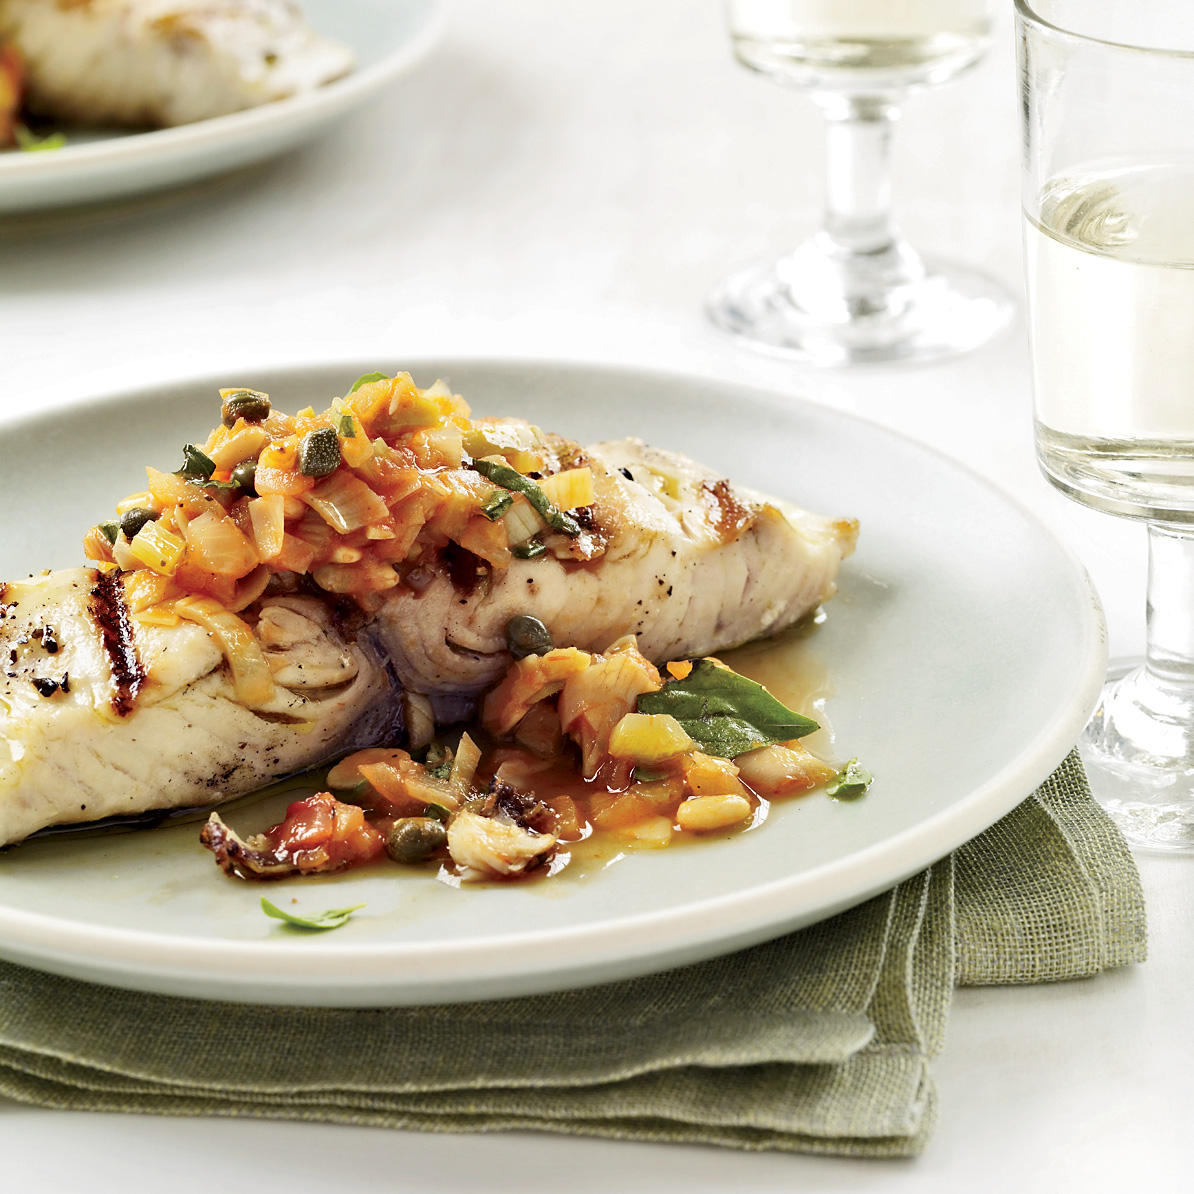 Grilled fish with artichoke caponata recipe michael for Best fish marinade